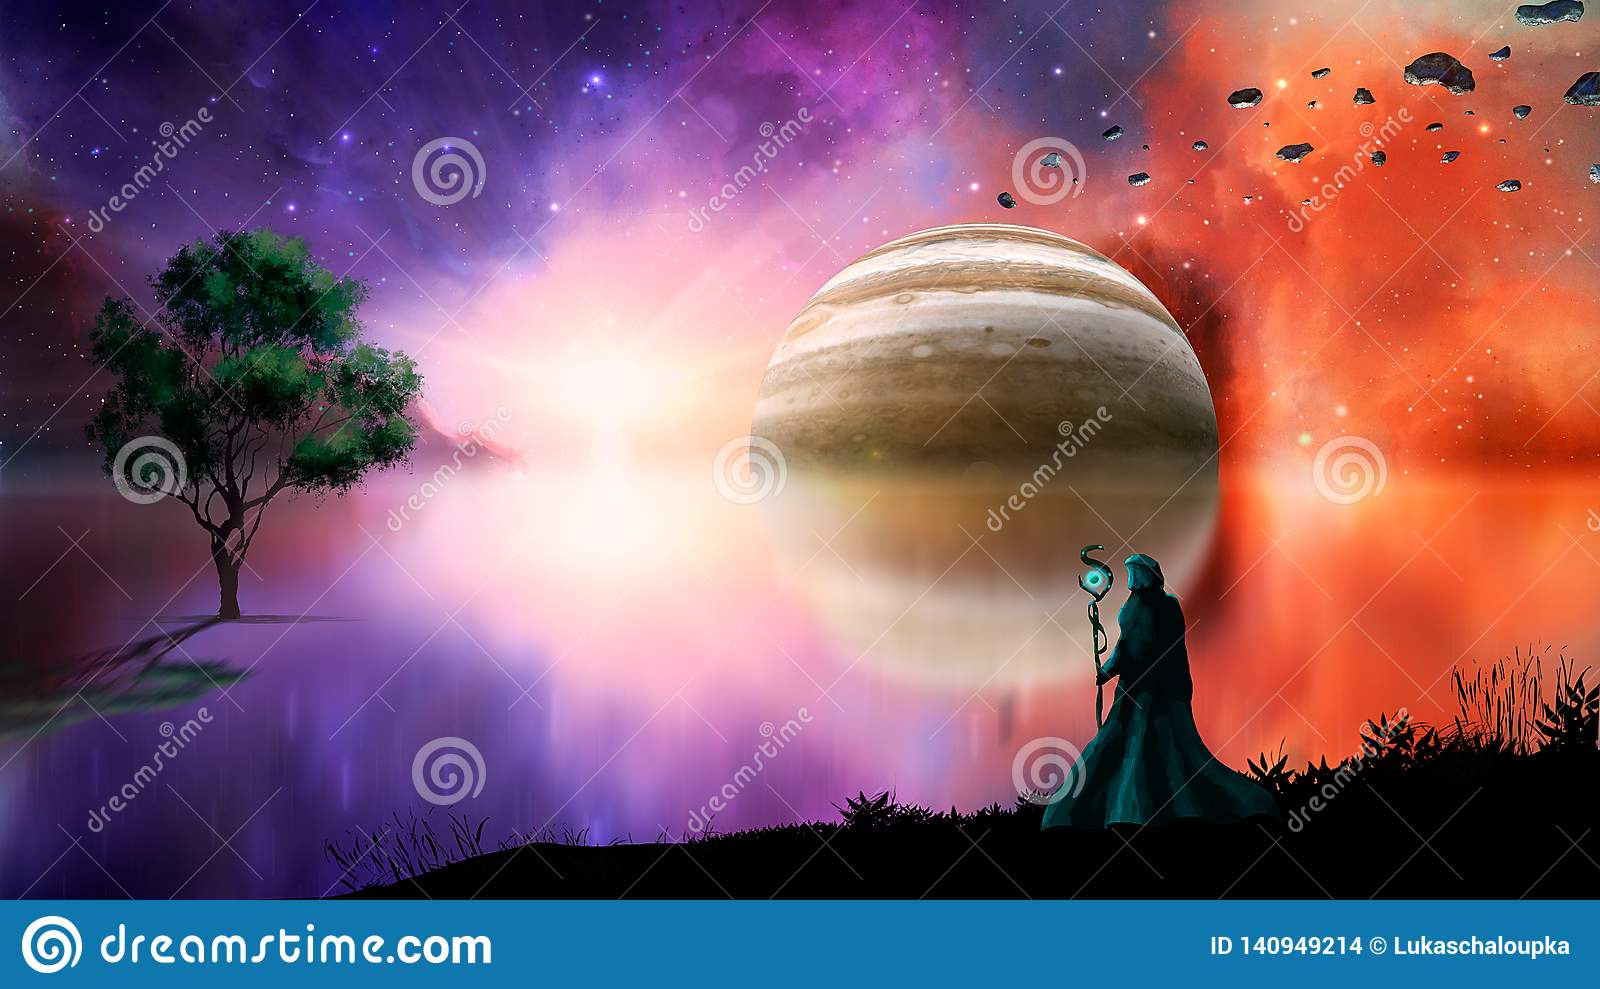 Sci-fi landscape digital painting with nebula, magician, gas gigant, lake and tree. Elements furnished by NASA. 3D rendering